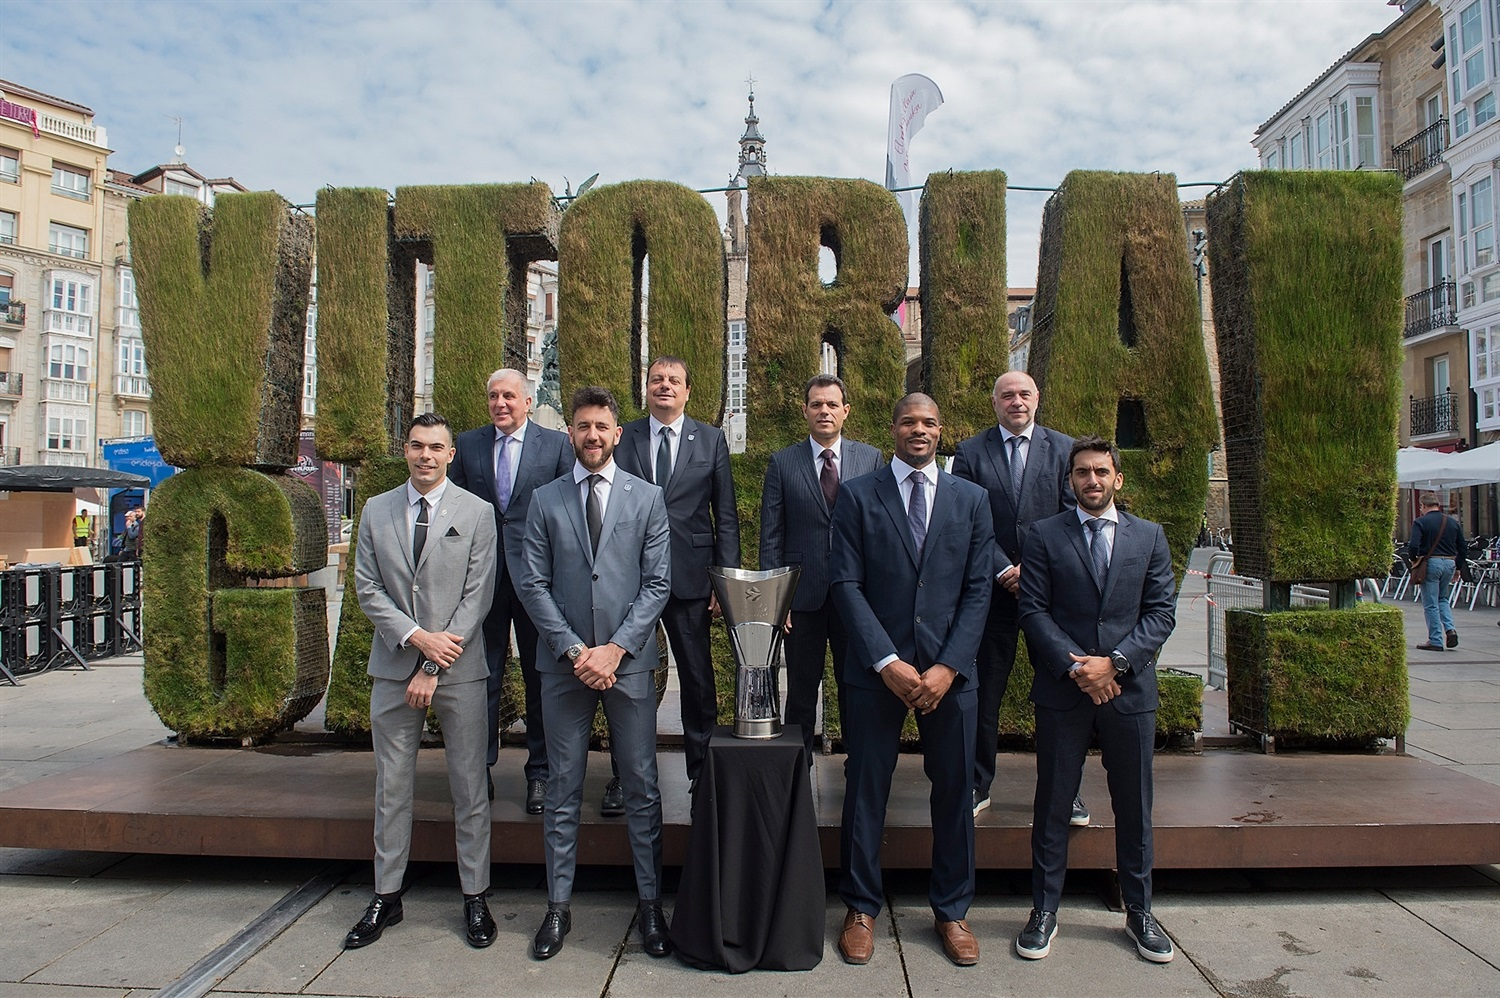 players-and-coaches-opening-press-conference-final-four-vitoria-gasteiz-2019-eb18